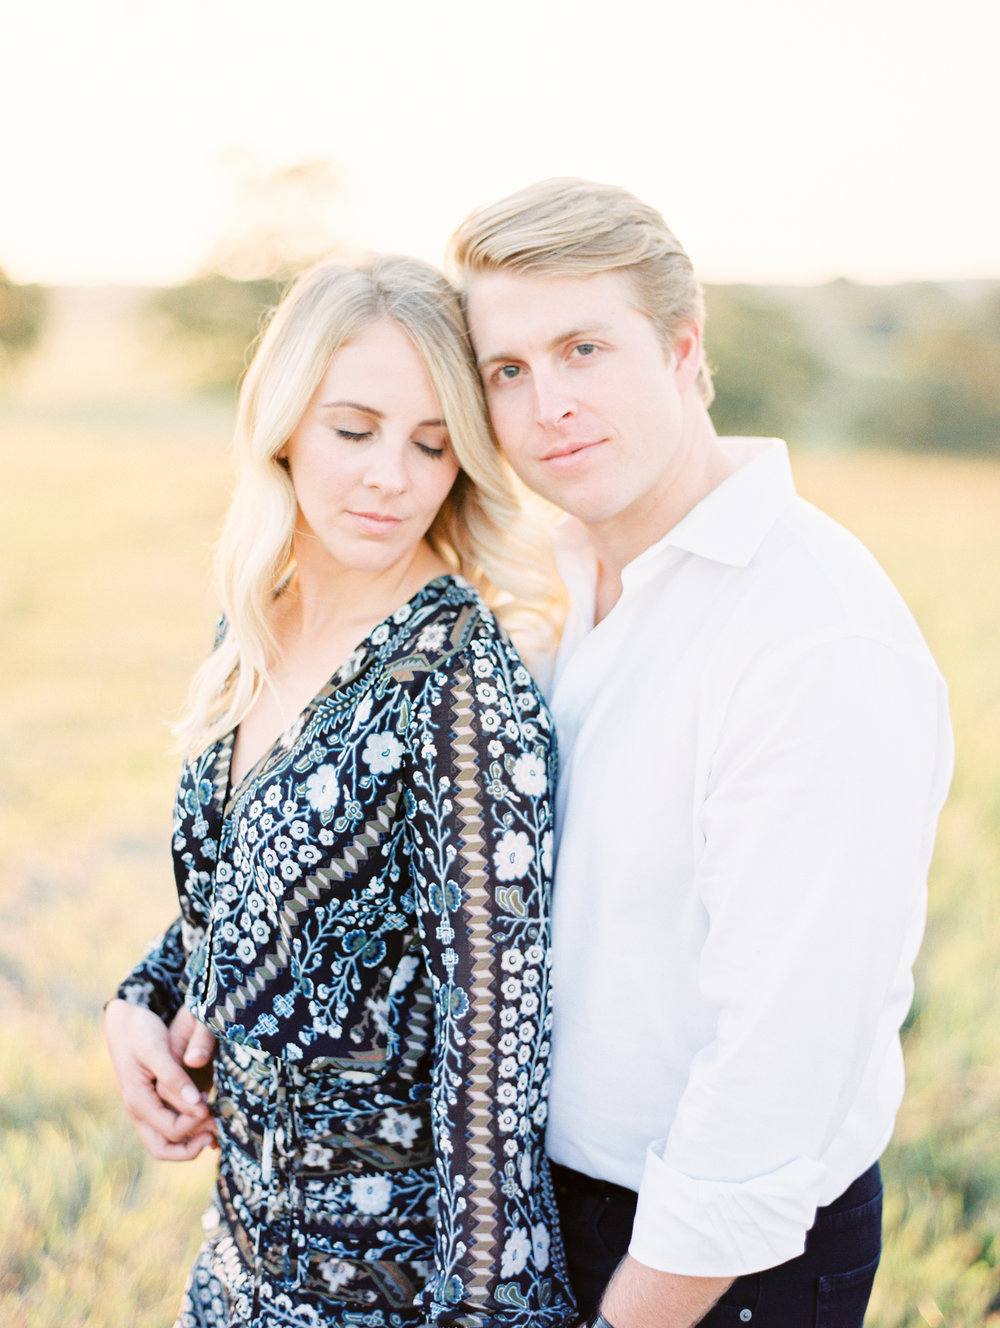 Lauren+John+Engaged+TX-31.jpg